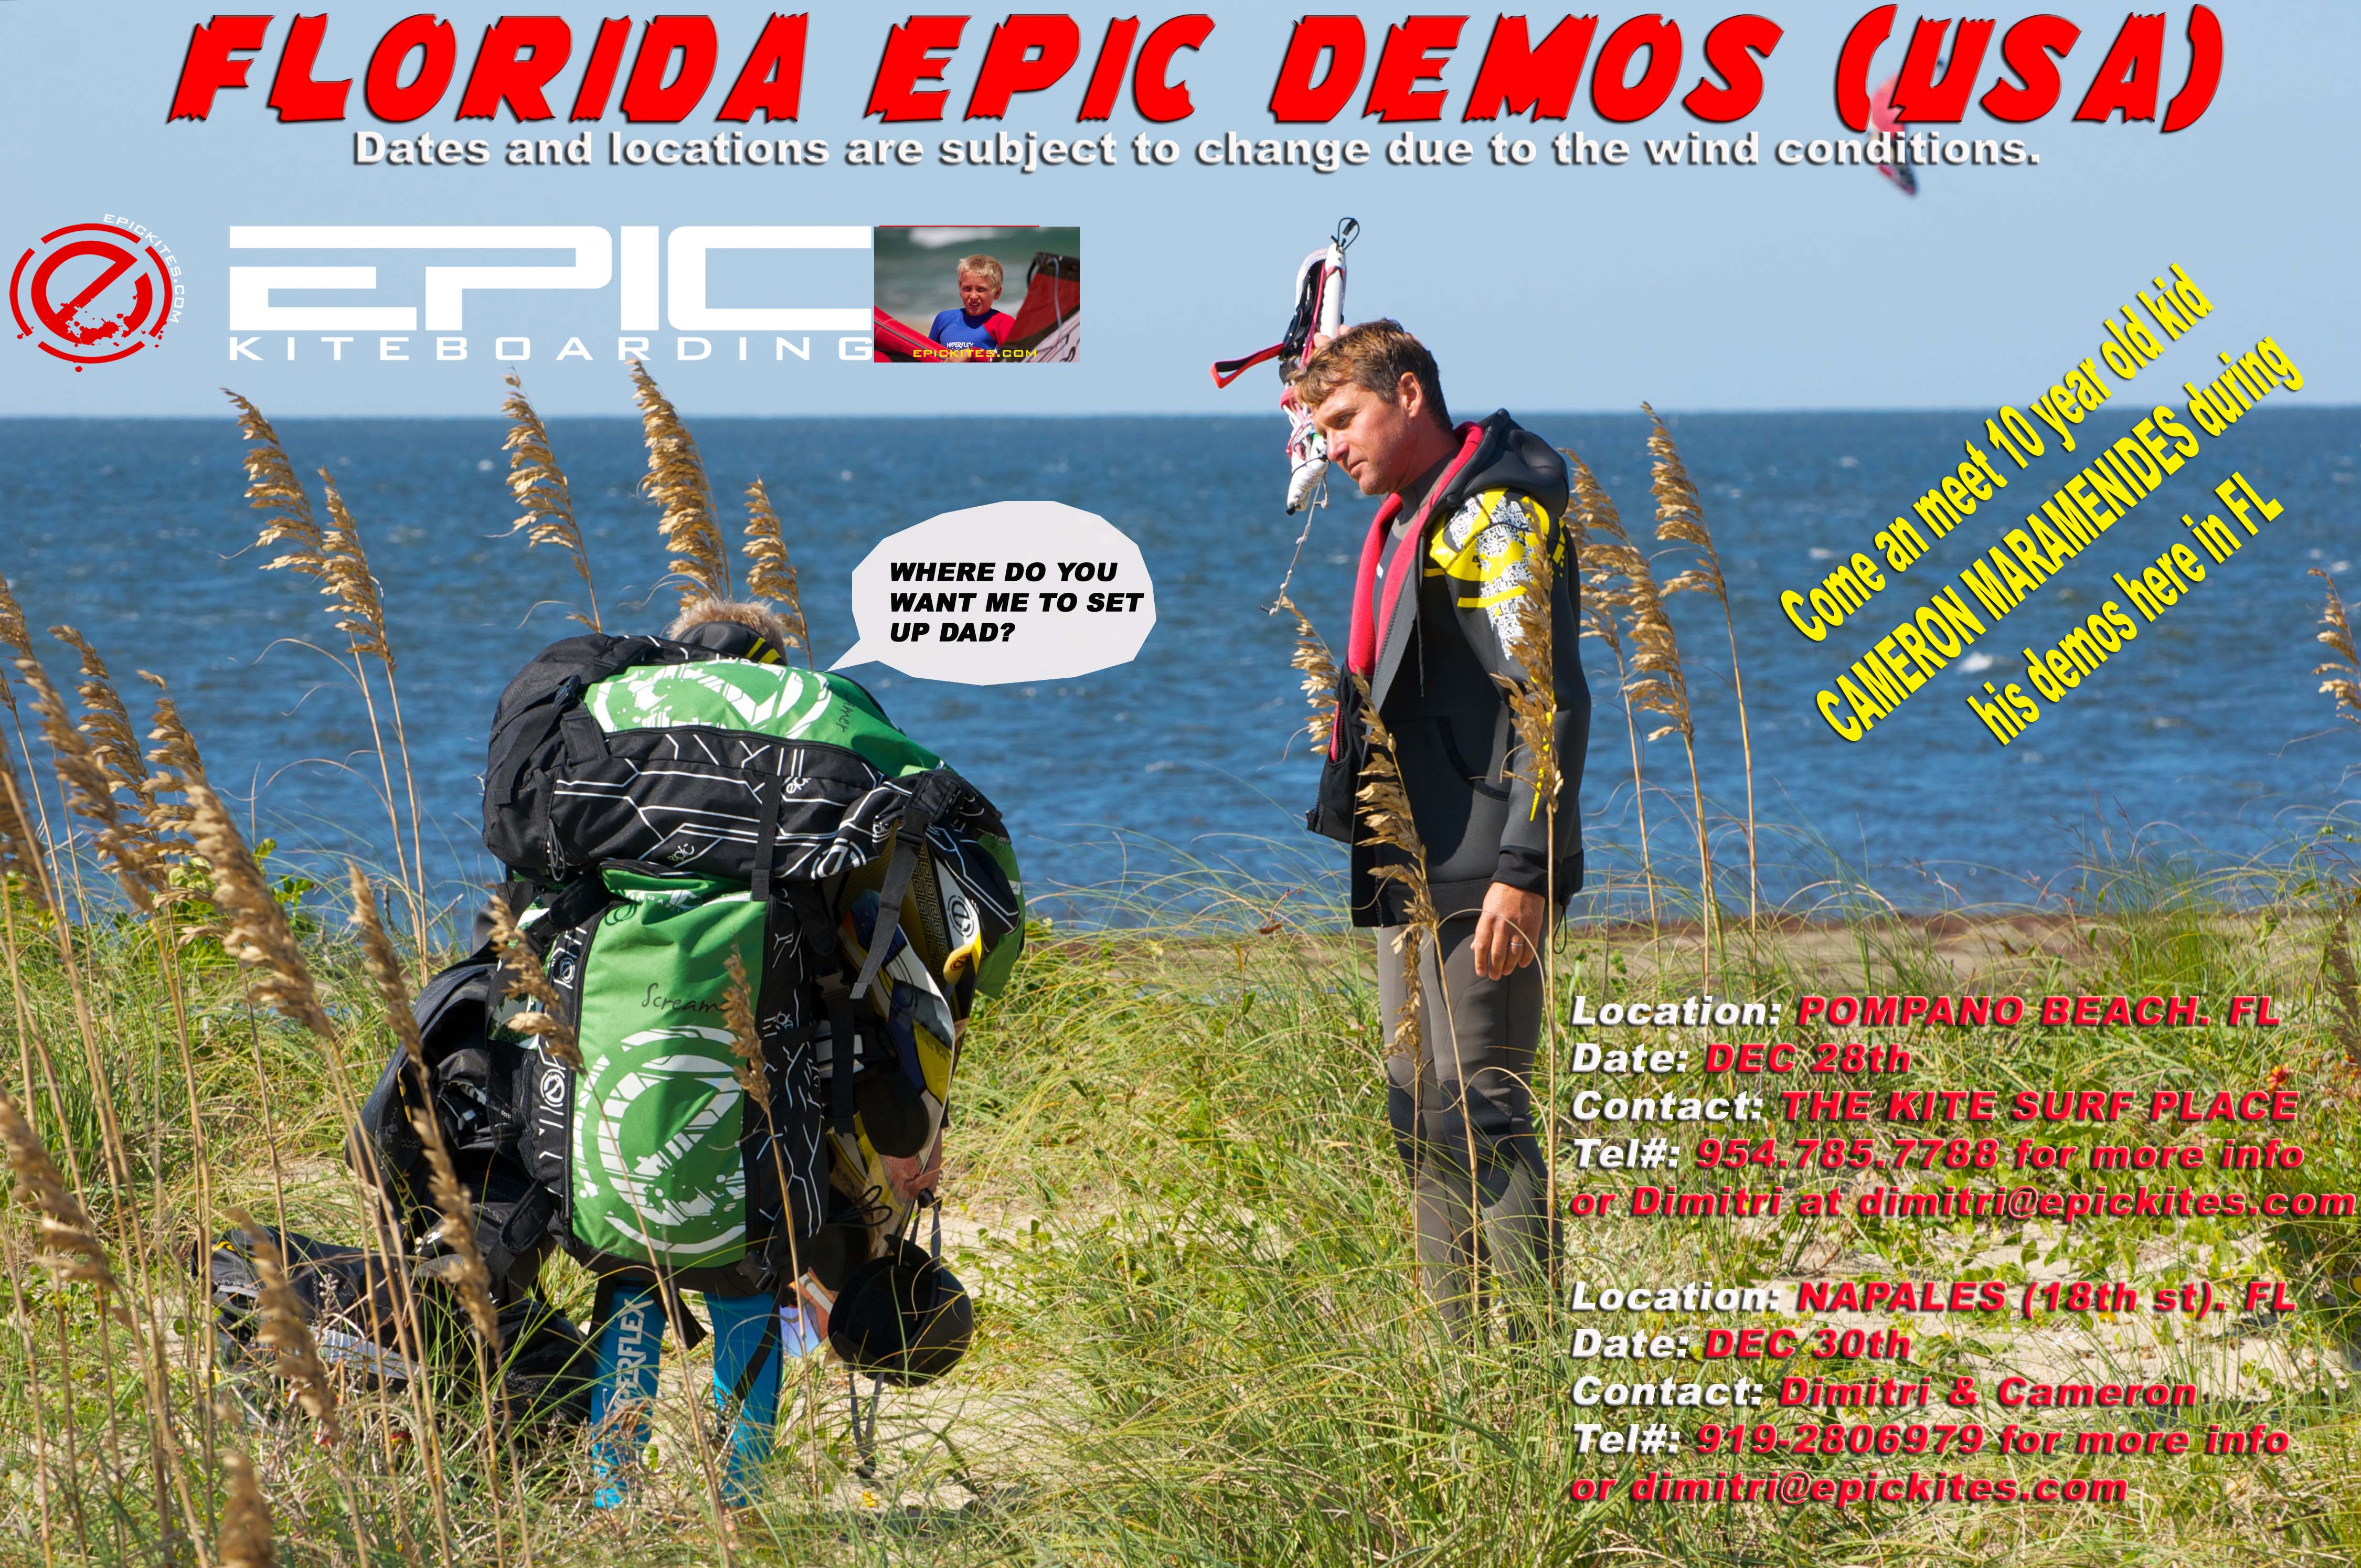 FLORIDA EPIC DEMOS CAMERON .jpg